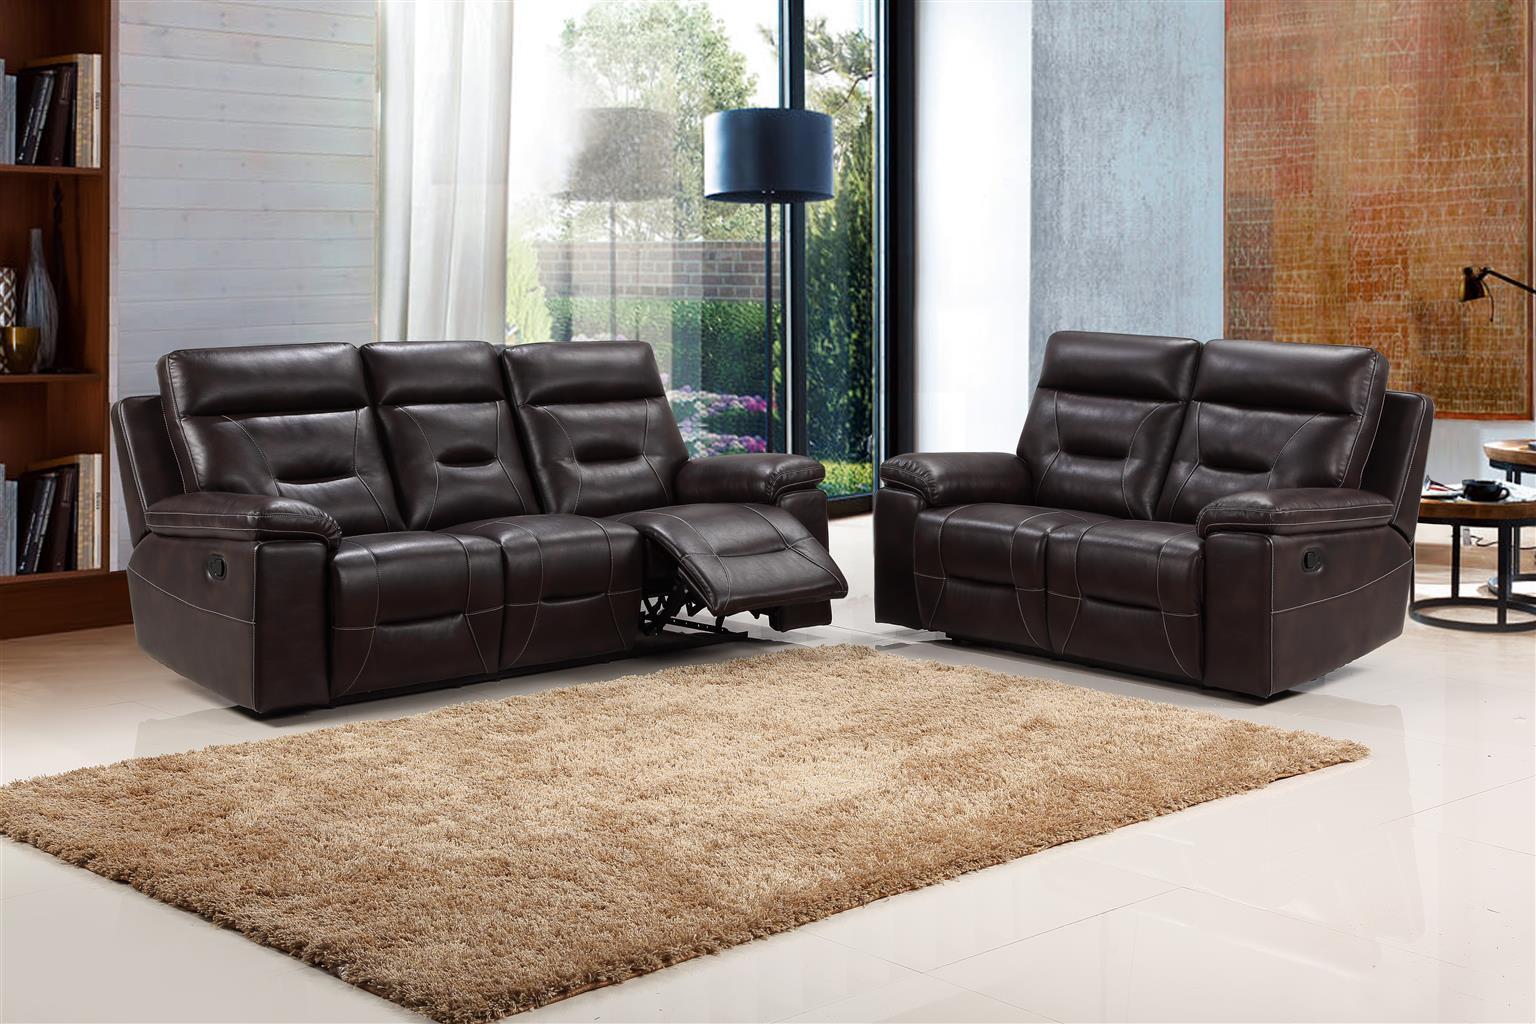 3 PIECE RECLINER LOUNGE SUITE BRAND NEW ANGELO FOR ONLY R 19 999!!!!!!!!!!!!!!!!!!!!!!!